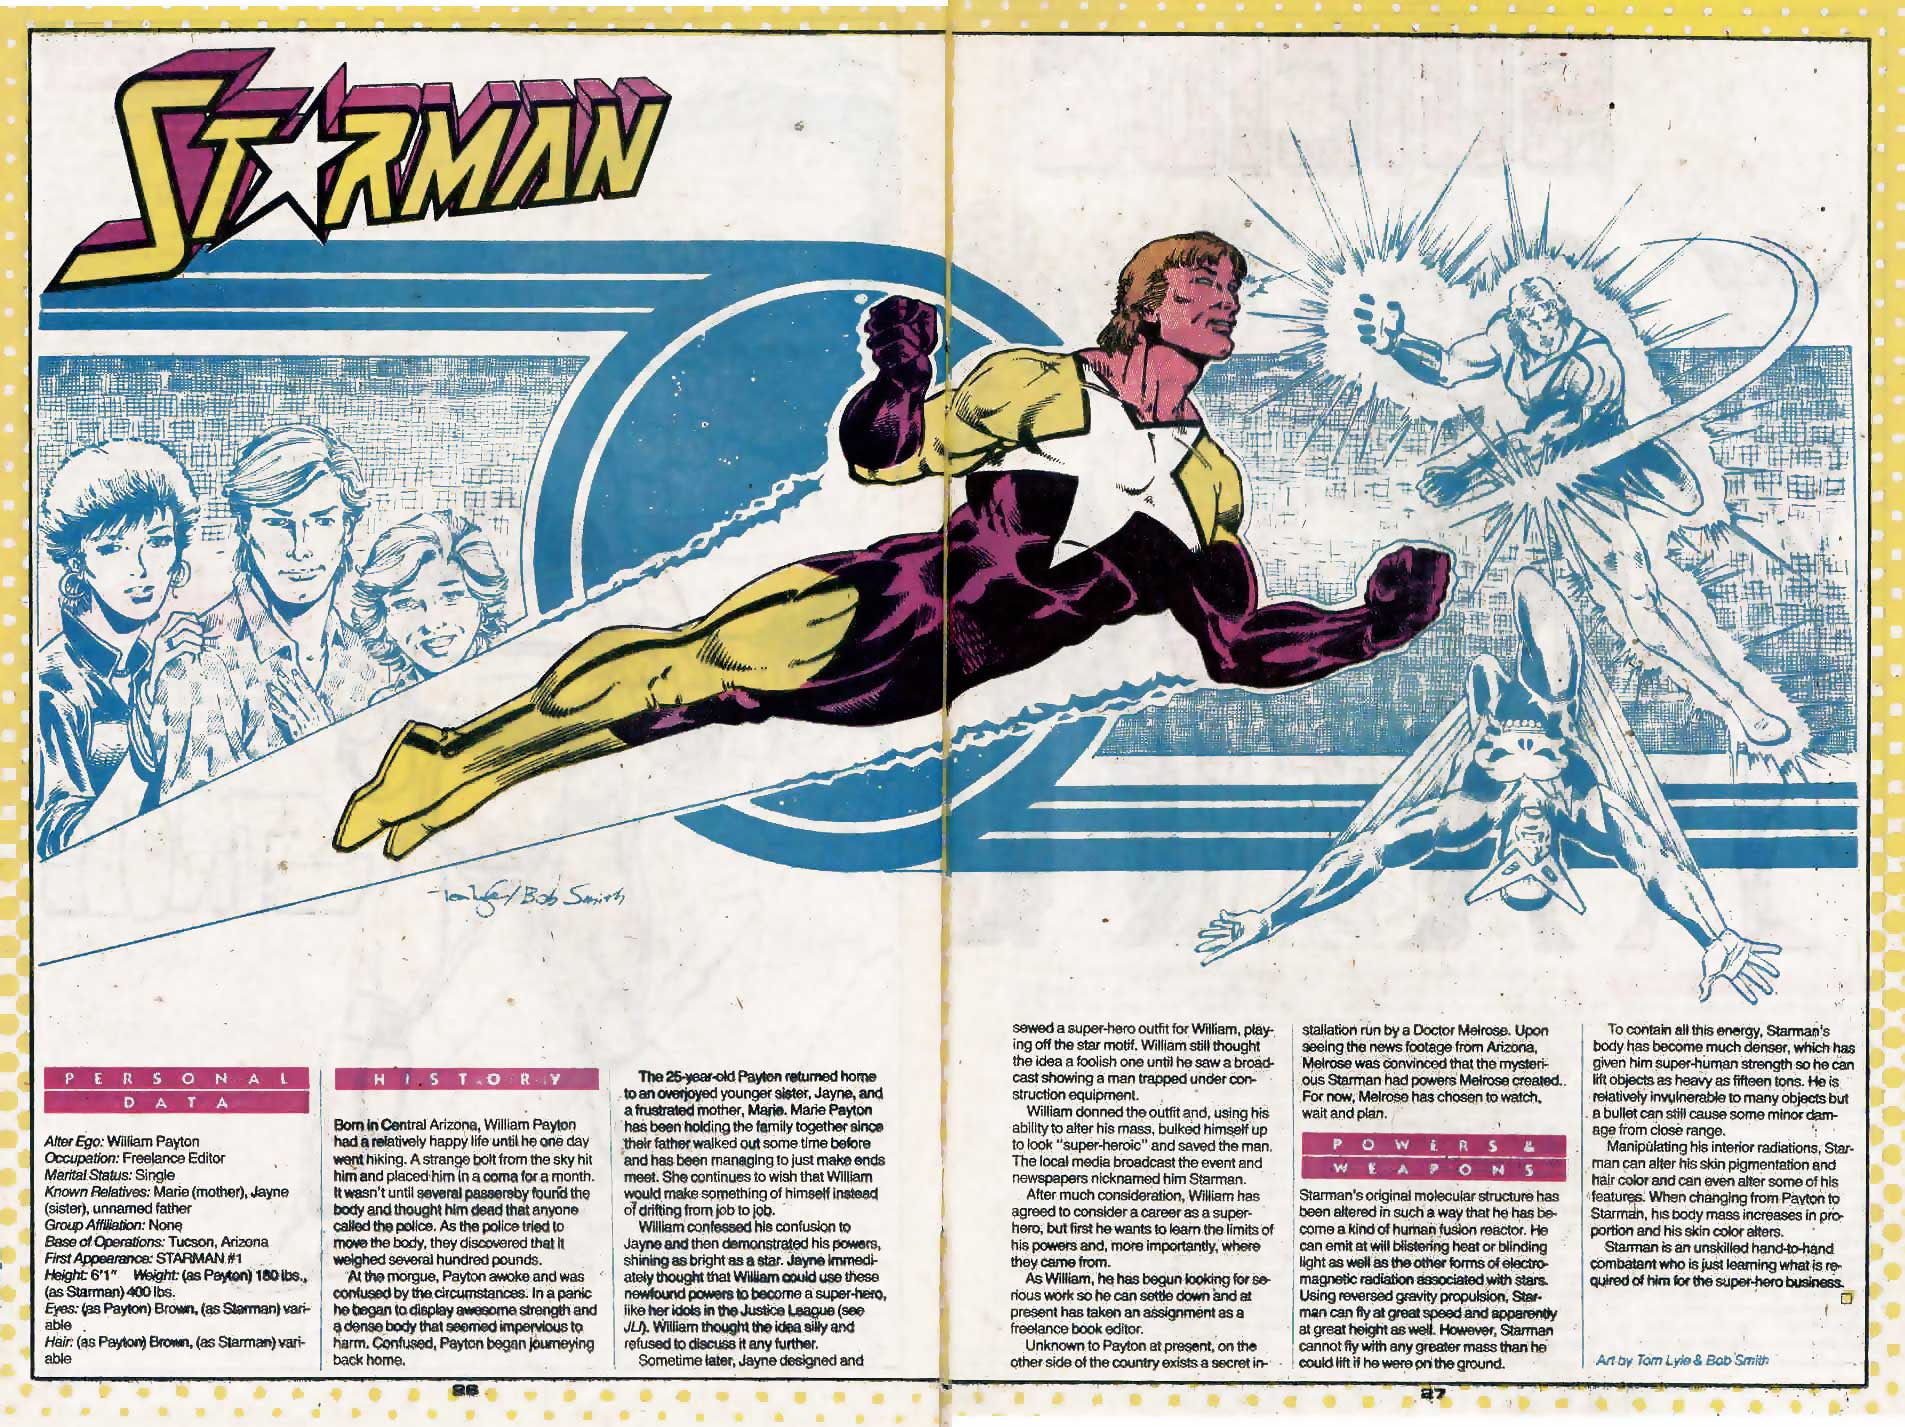 Who's Who Update 88 #3 Starman III by Tom Lyle and Bob Smith